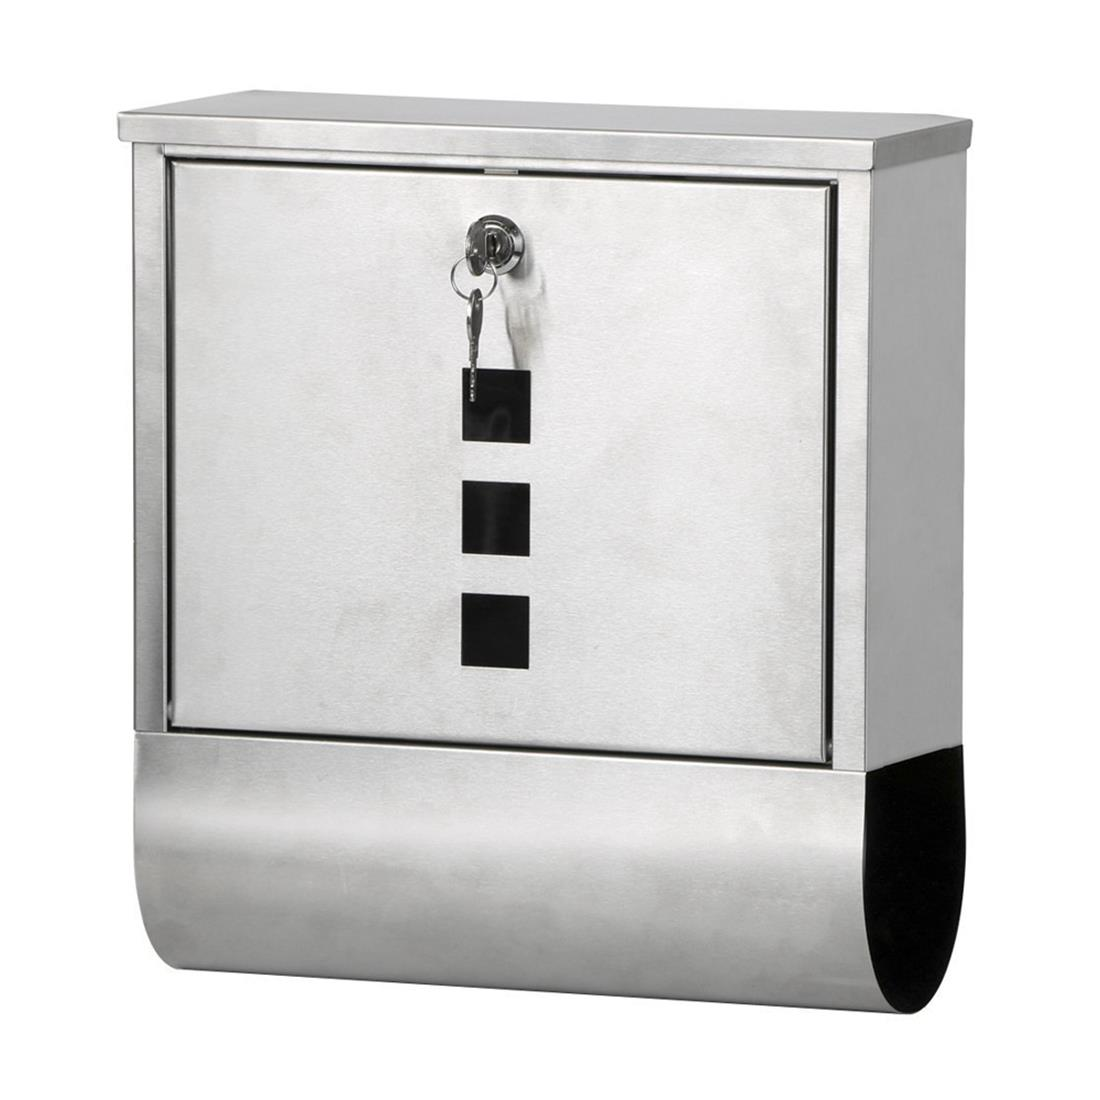 JFBL Hot Waterproof Stainless Steel Lockable Mailbox Newspaper Holder Outdoor Mail Post Letter Box security mail bag w lockable belt closure 18w x 30h